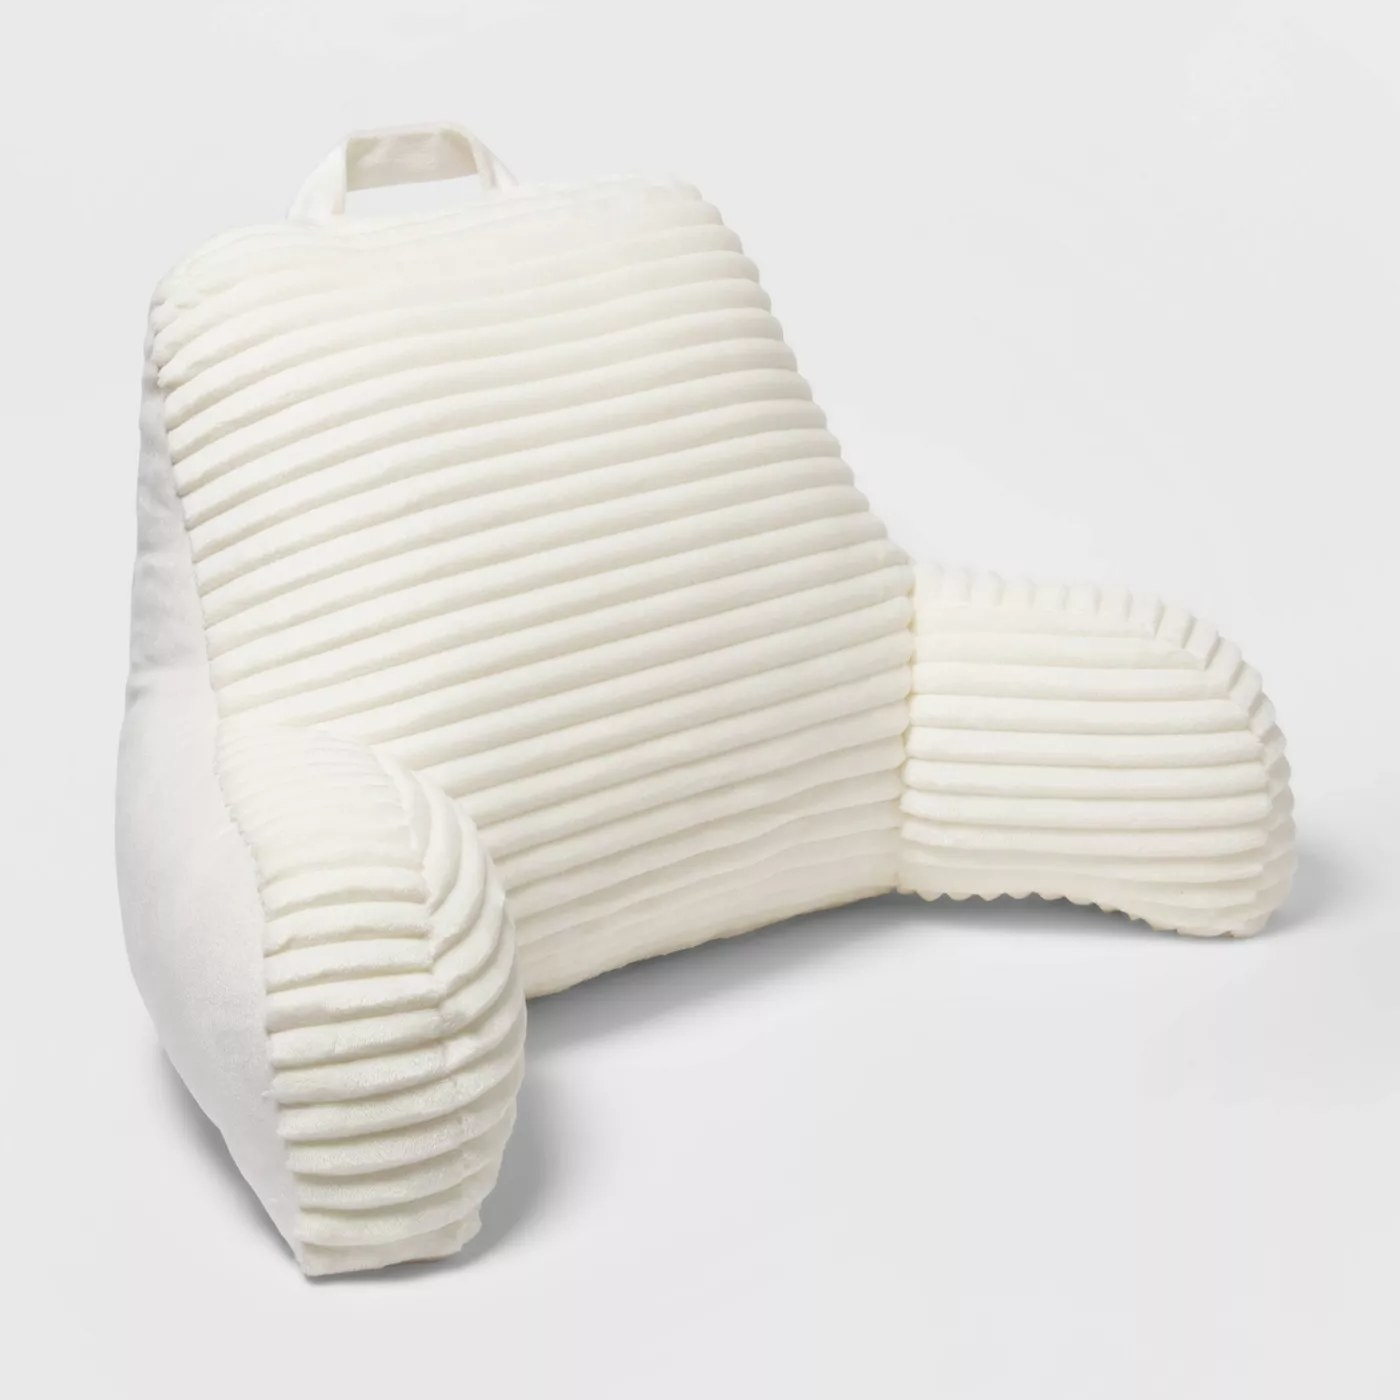 The ivory backrest pillow with a ribbed texture